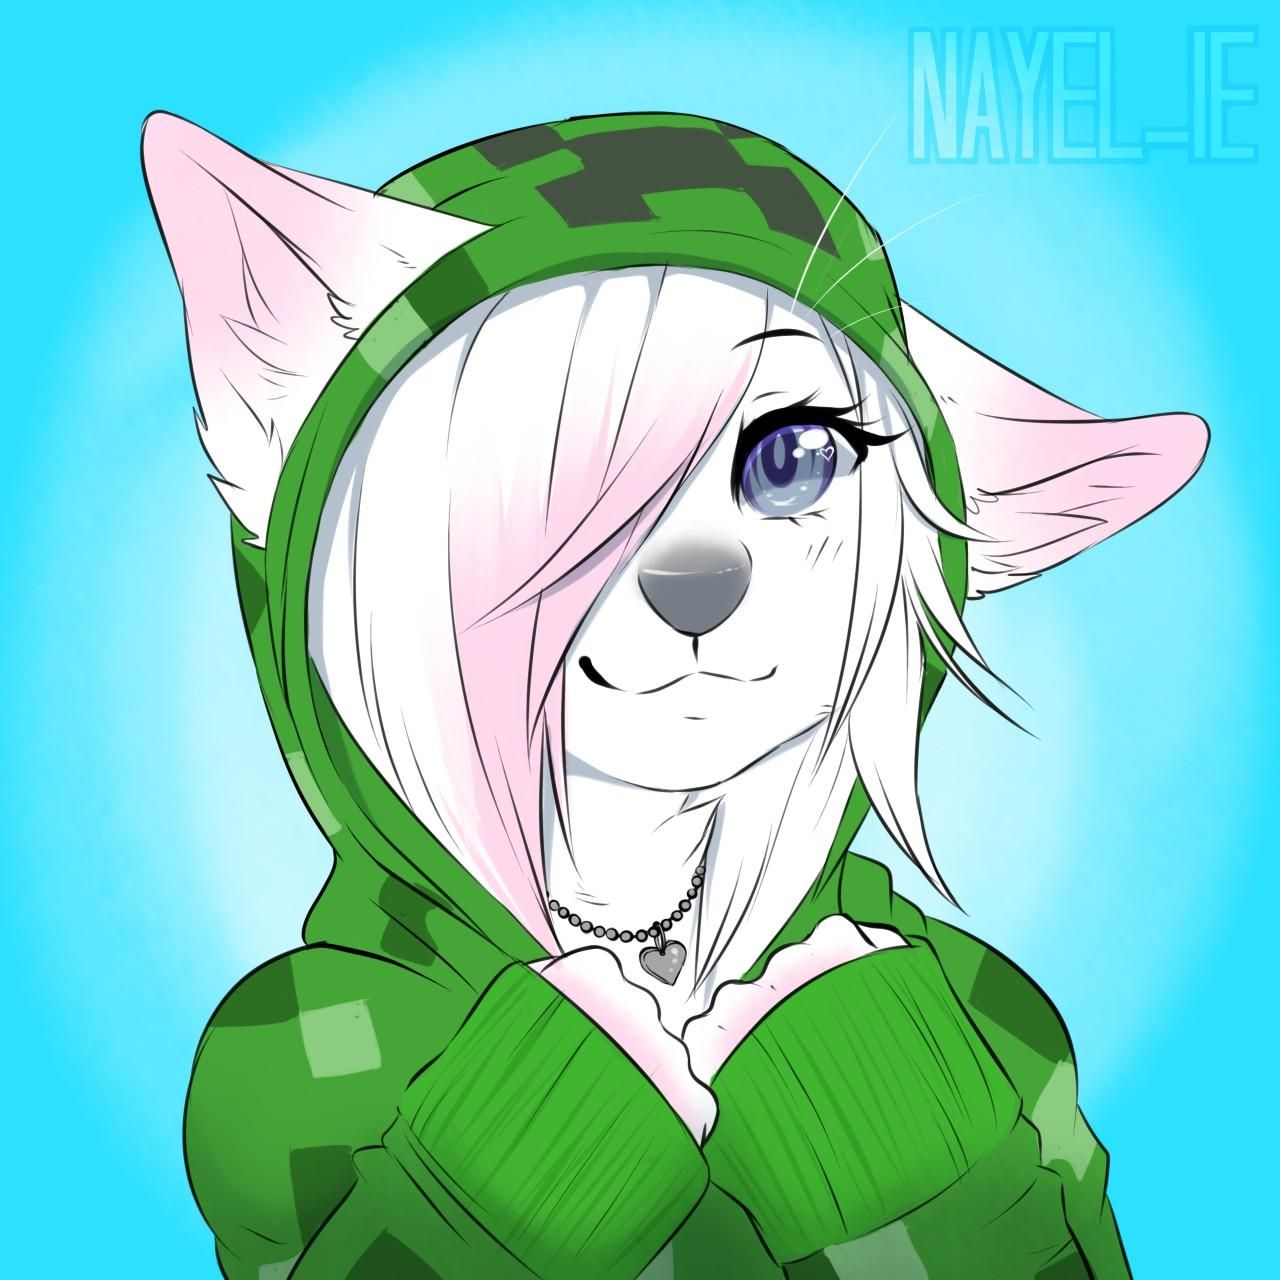 Artwork by nayel-ie | Furries